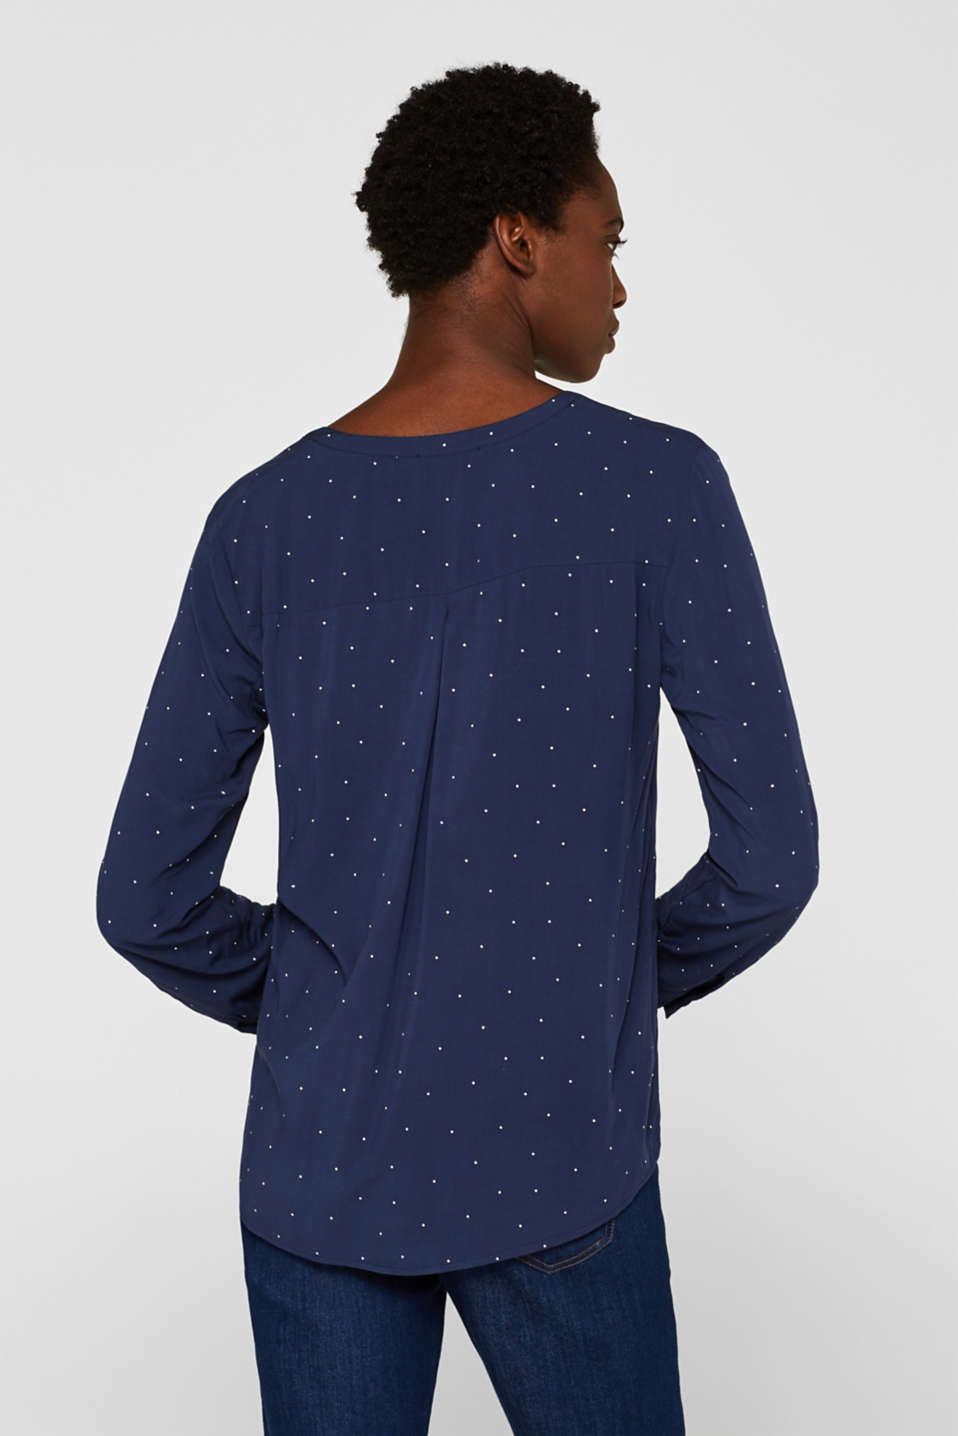 Henley blouse with polka dots and turn-up sleeves, NAVY, detail image number 3